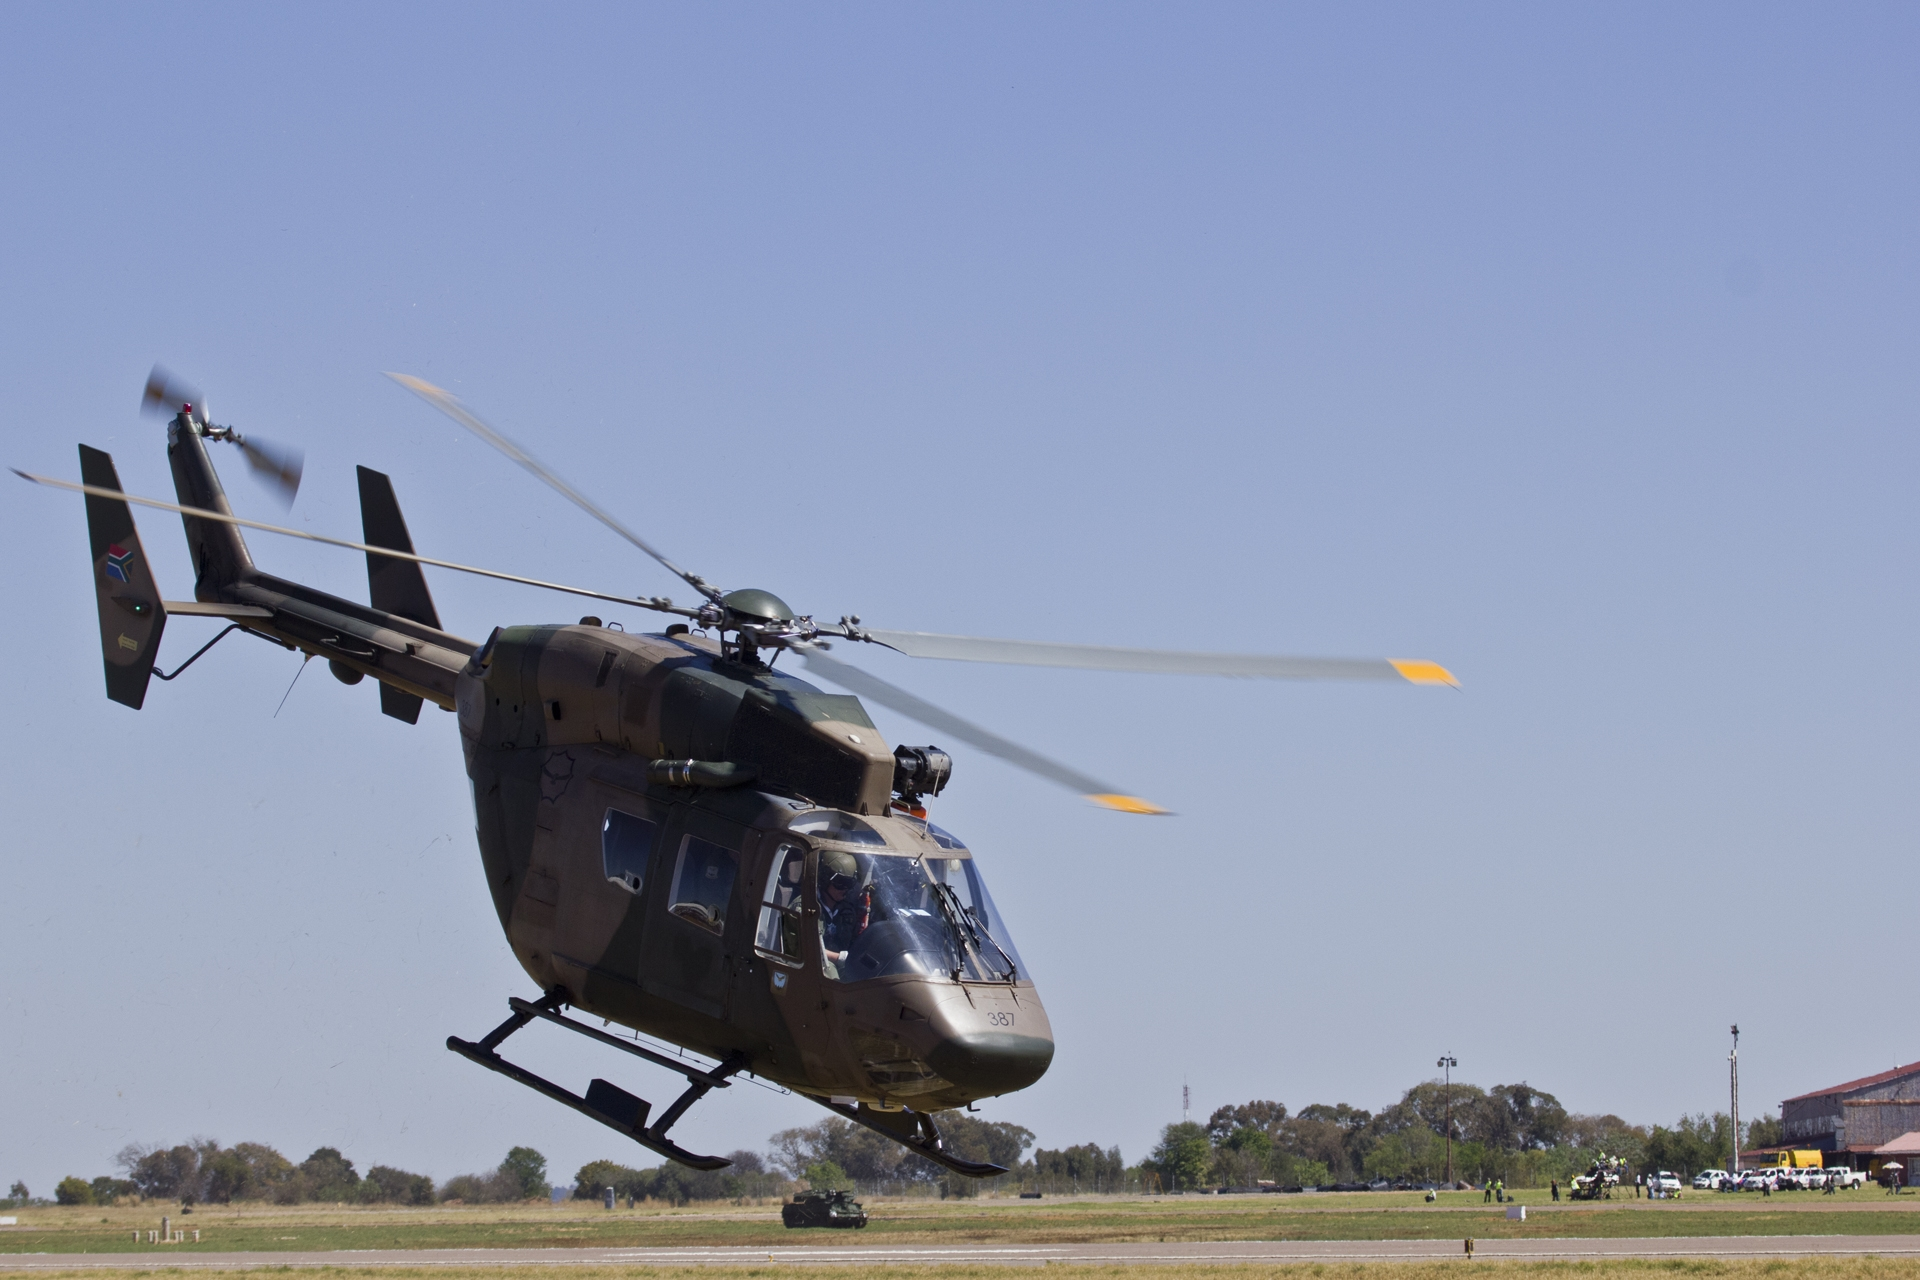 Helicopter at the Airshow